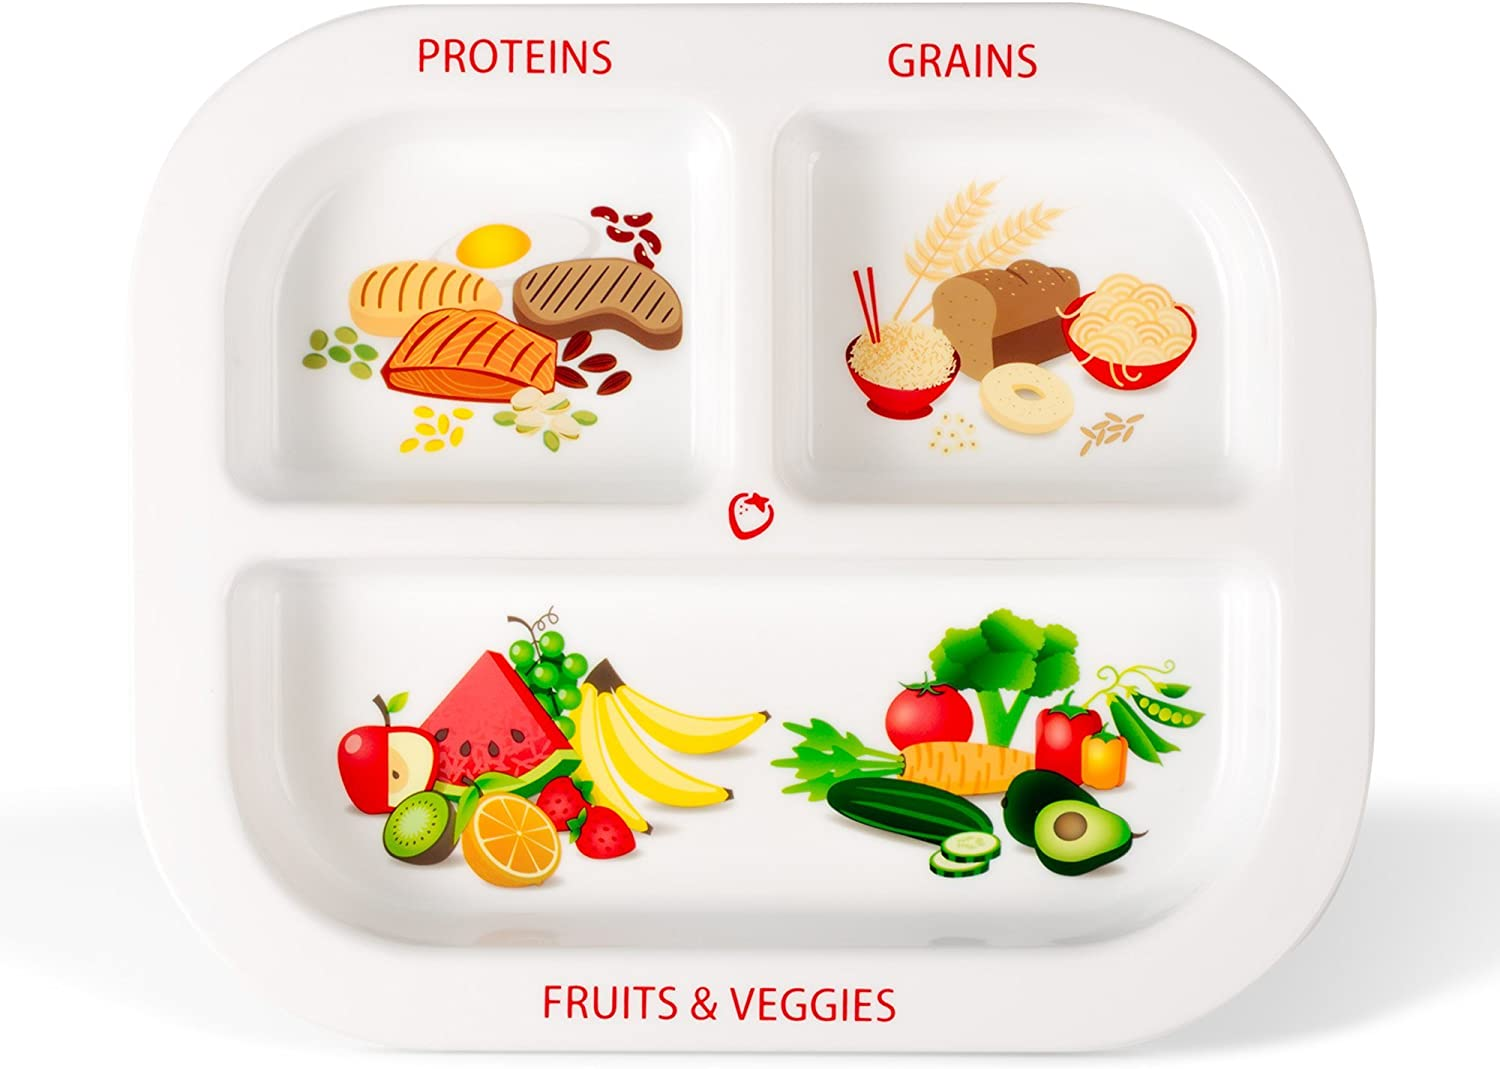 Health Beet Portion Plate for Kids, Toddlers - Rectangle Kids Plate with Dividers and Nutrition Portions for Healthy Eating Habits (Single Plate)